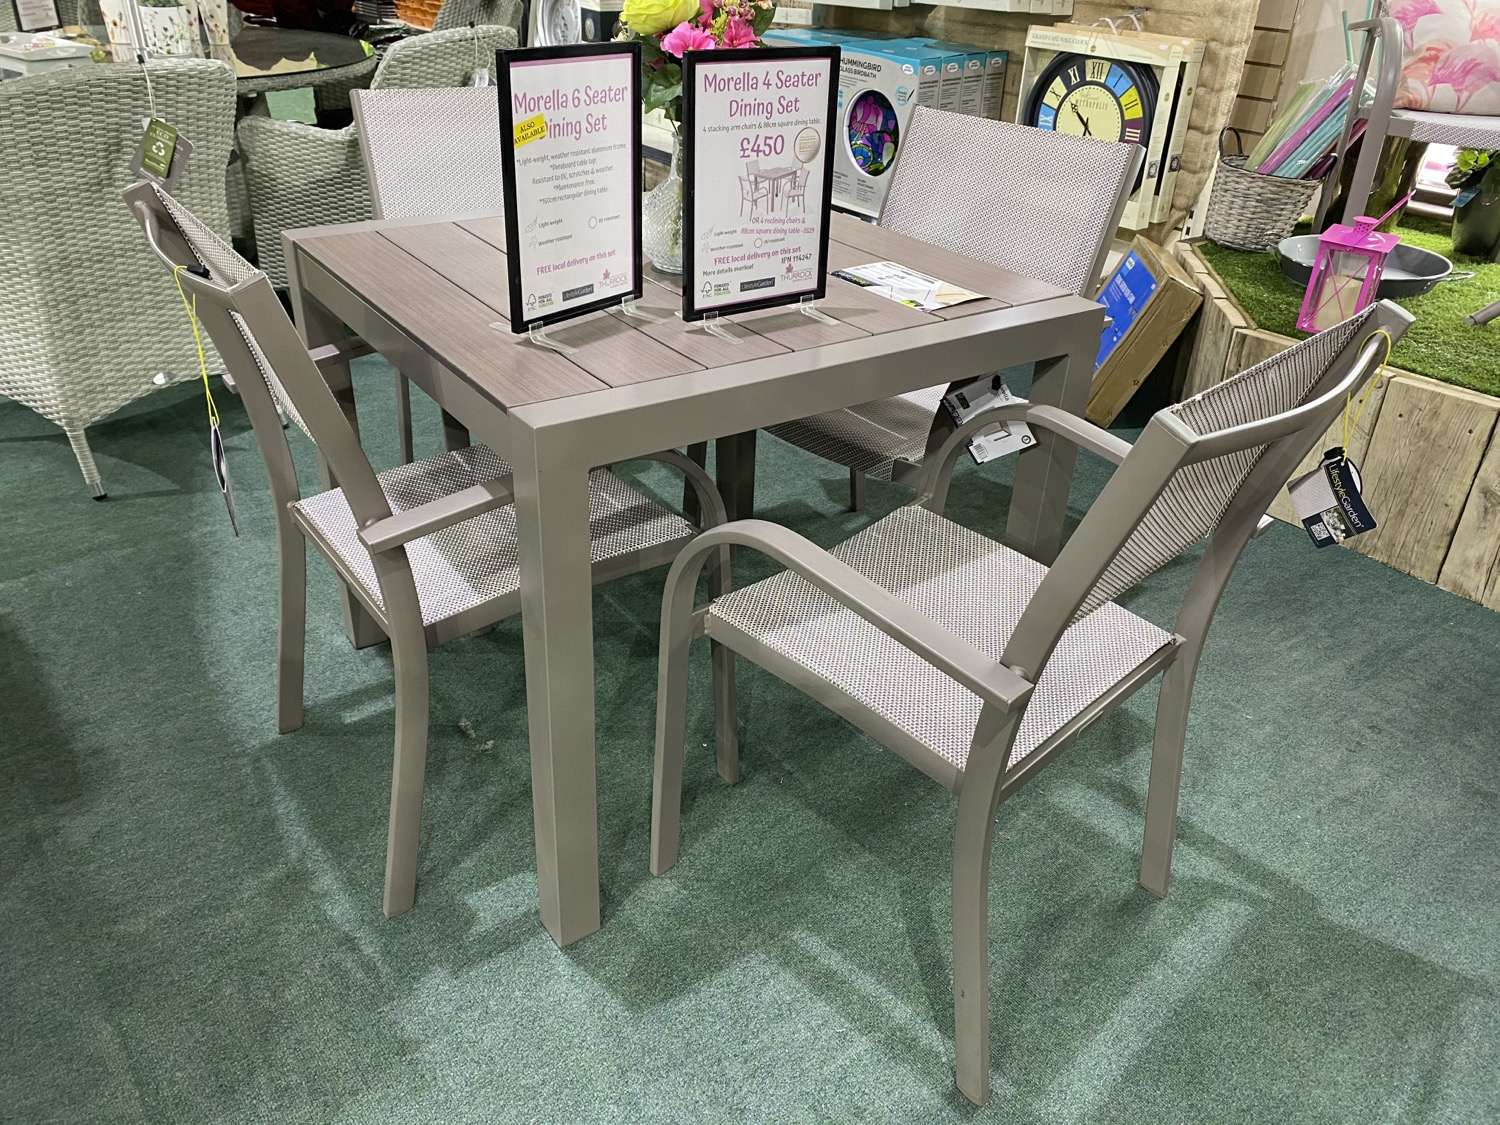 Morella 4 Seater Dining Set - £450